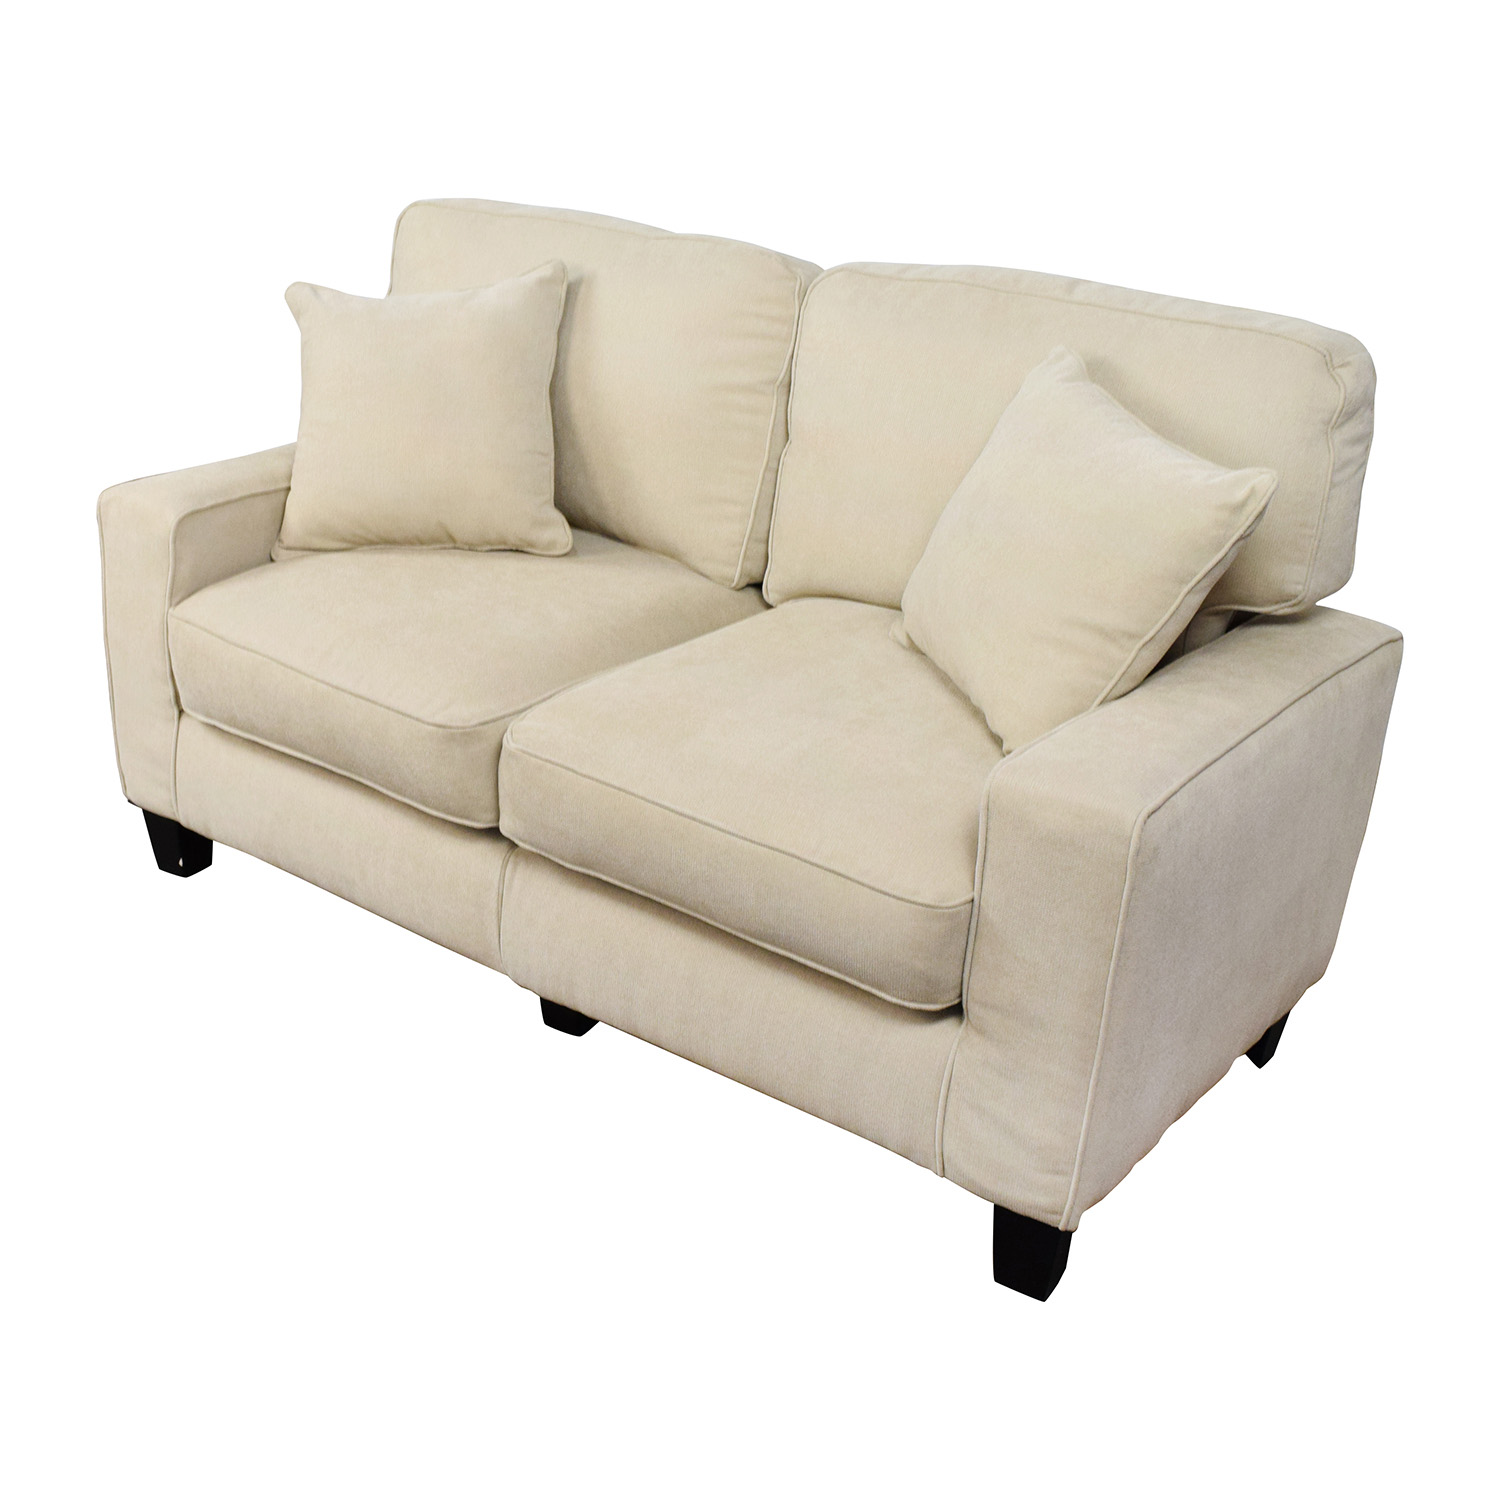 Wonderful ... Buy Target Tan Loveseat Sofa Target Loveseats ...